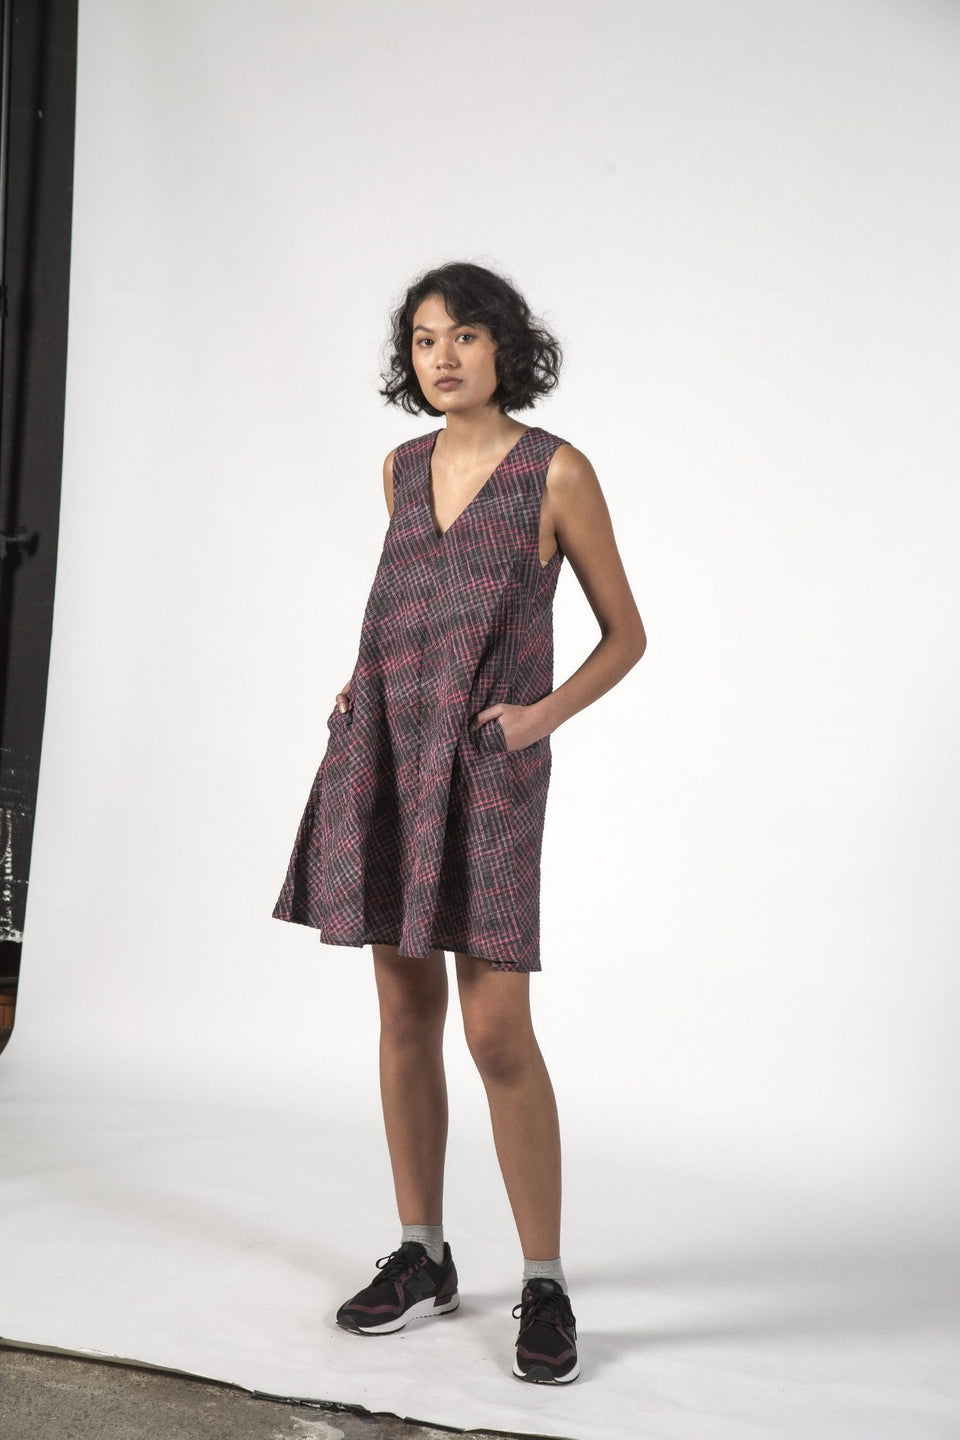 Thing Thing Estelle Dress - Charcoal Check